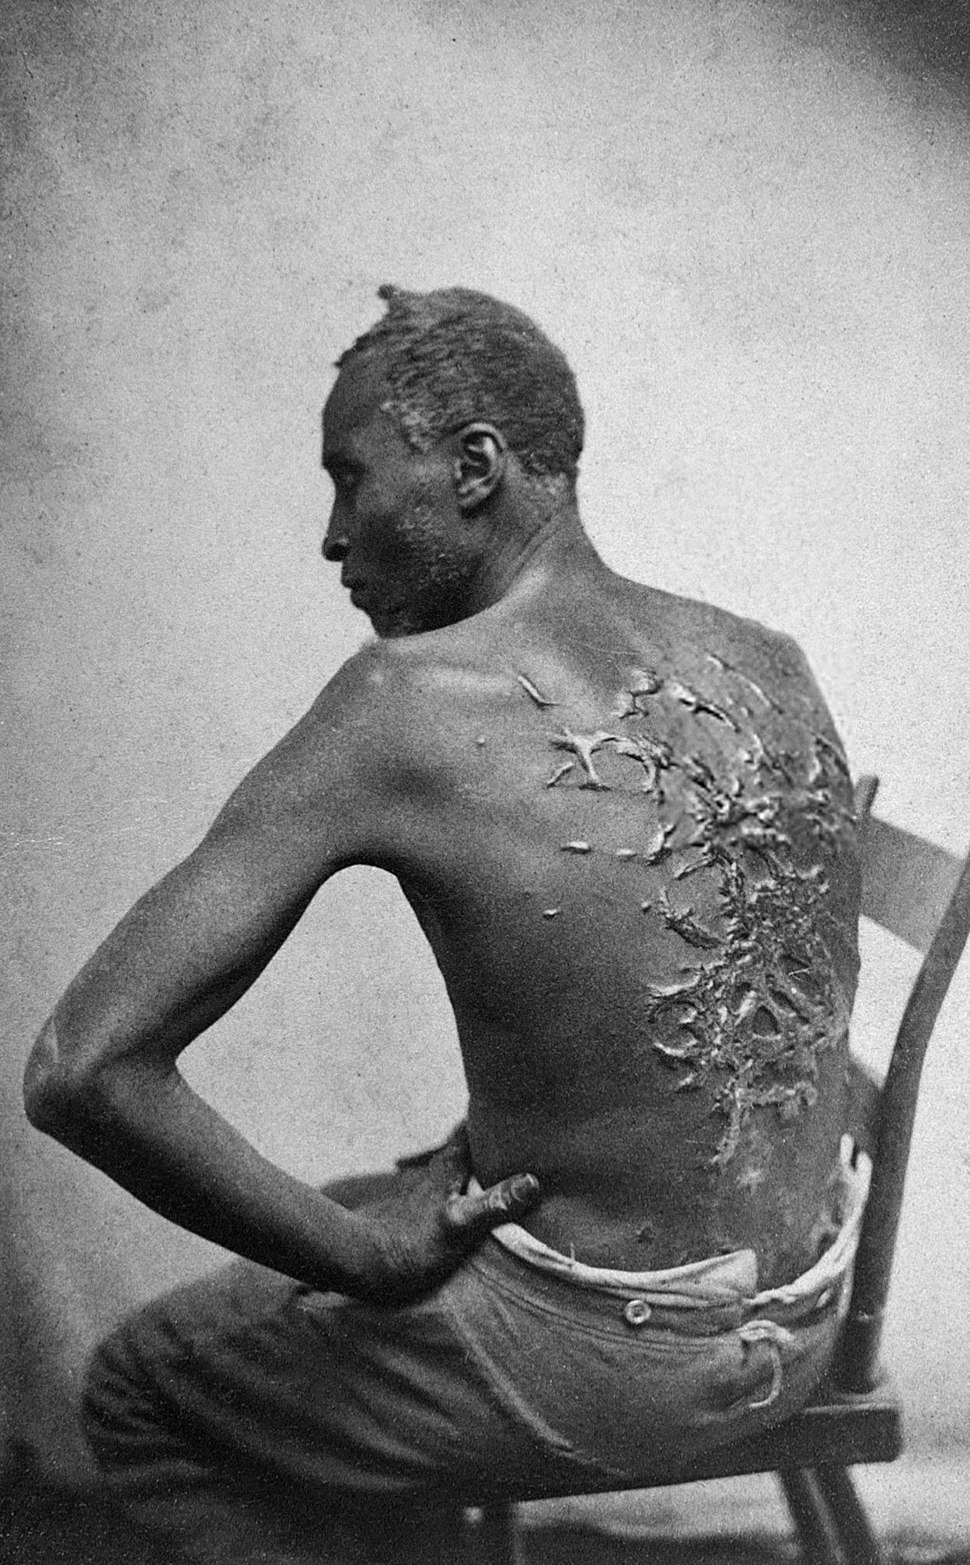 Scourged back by McPherson & Oliver, 1863, retouched